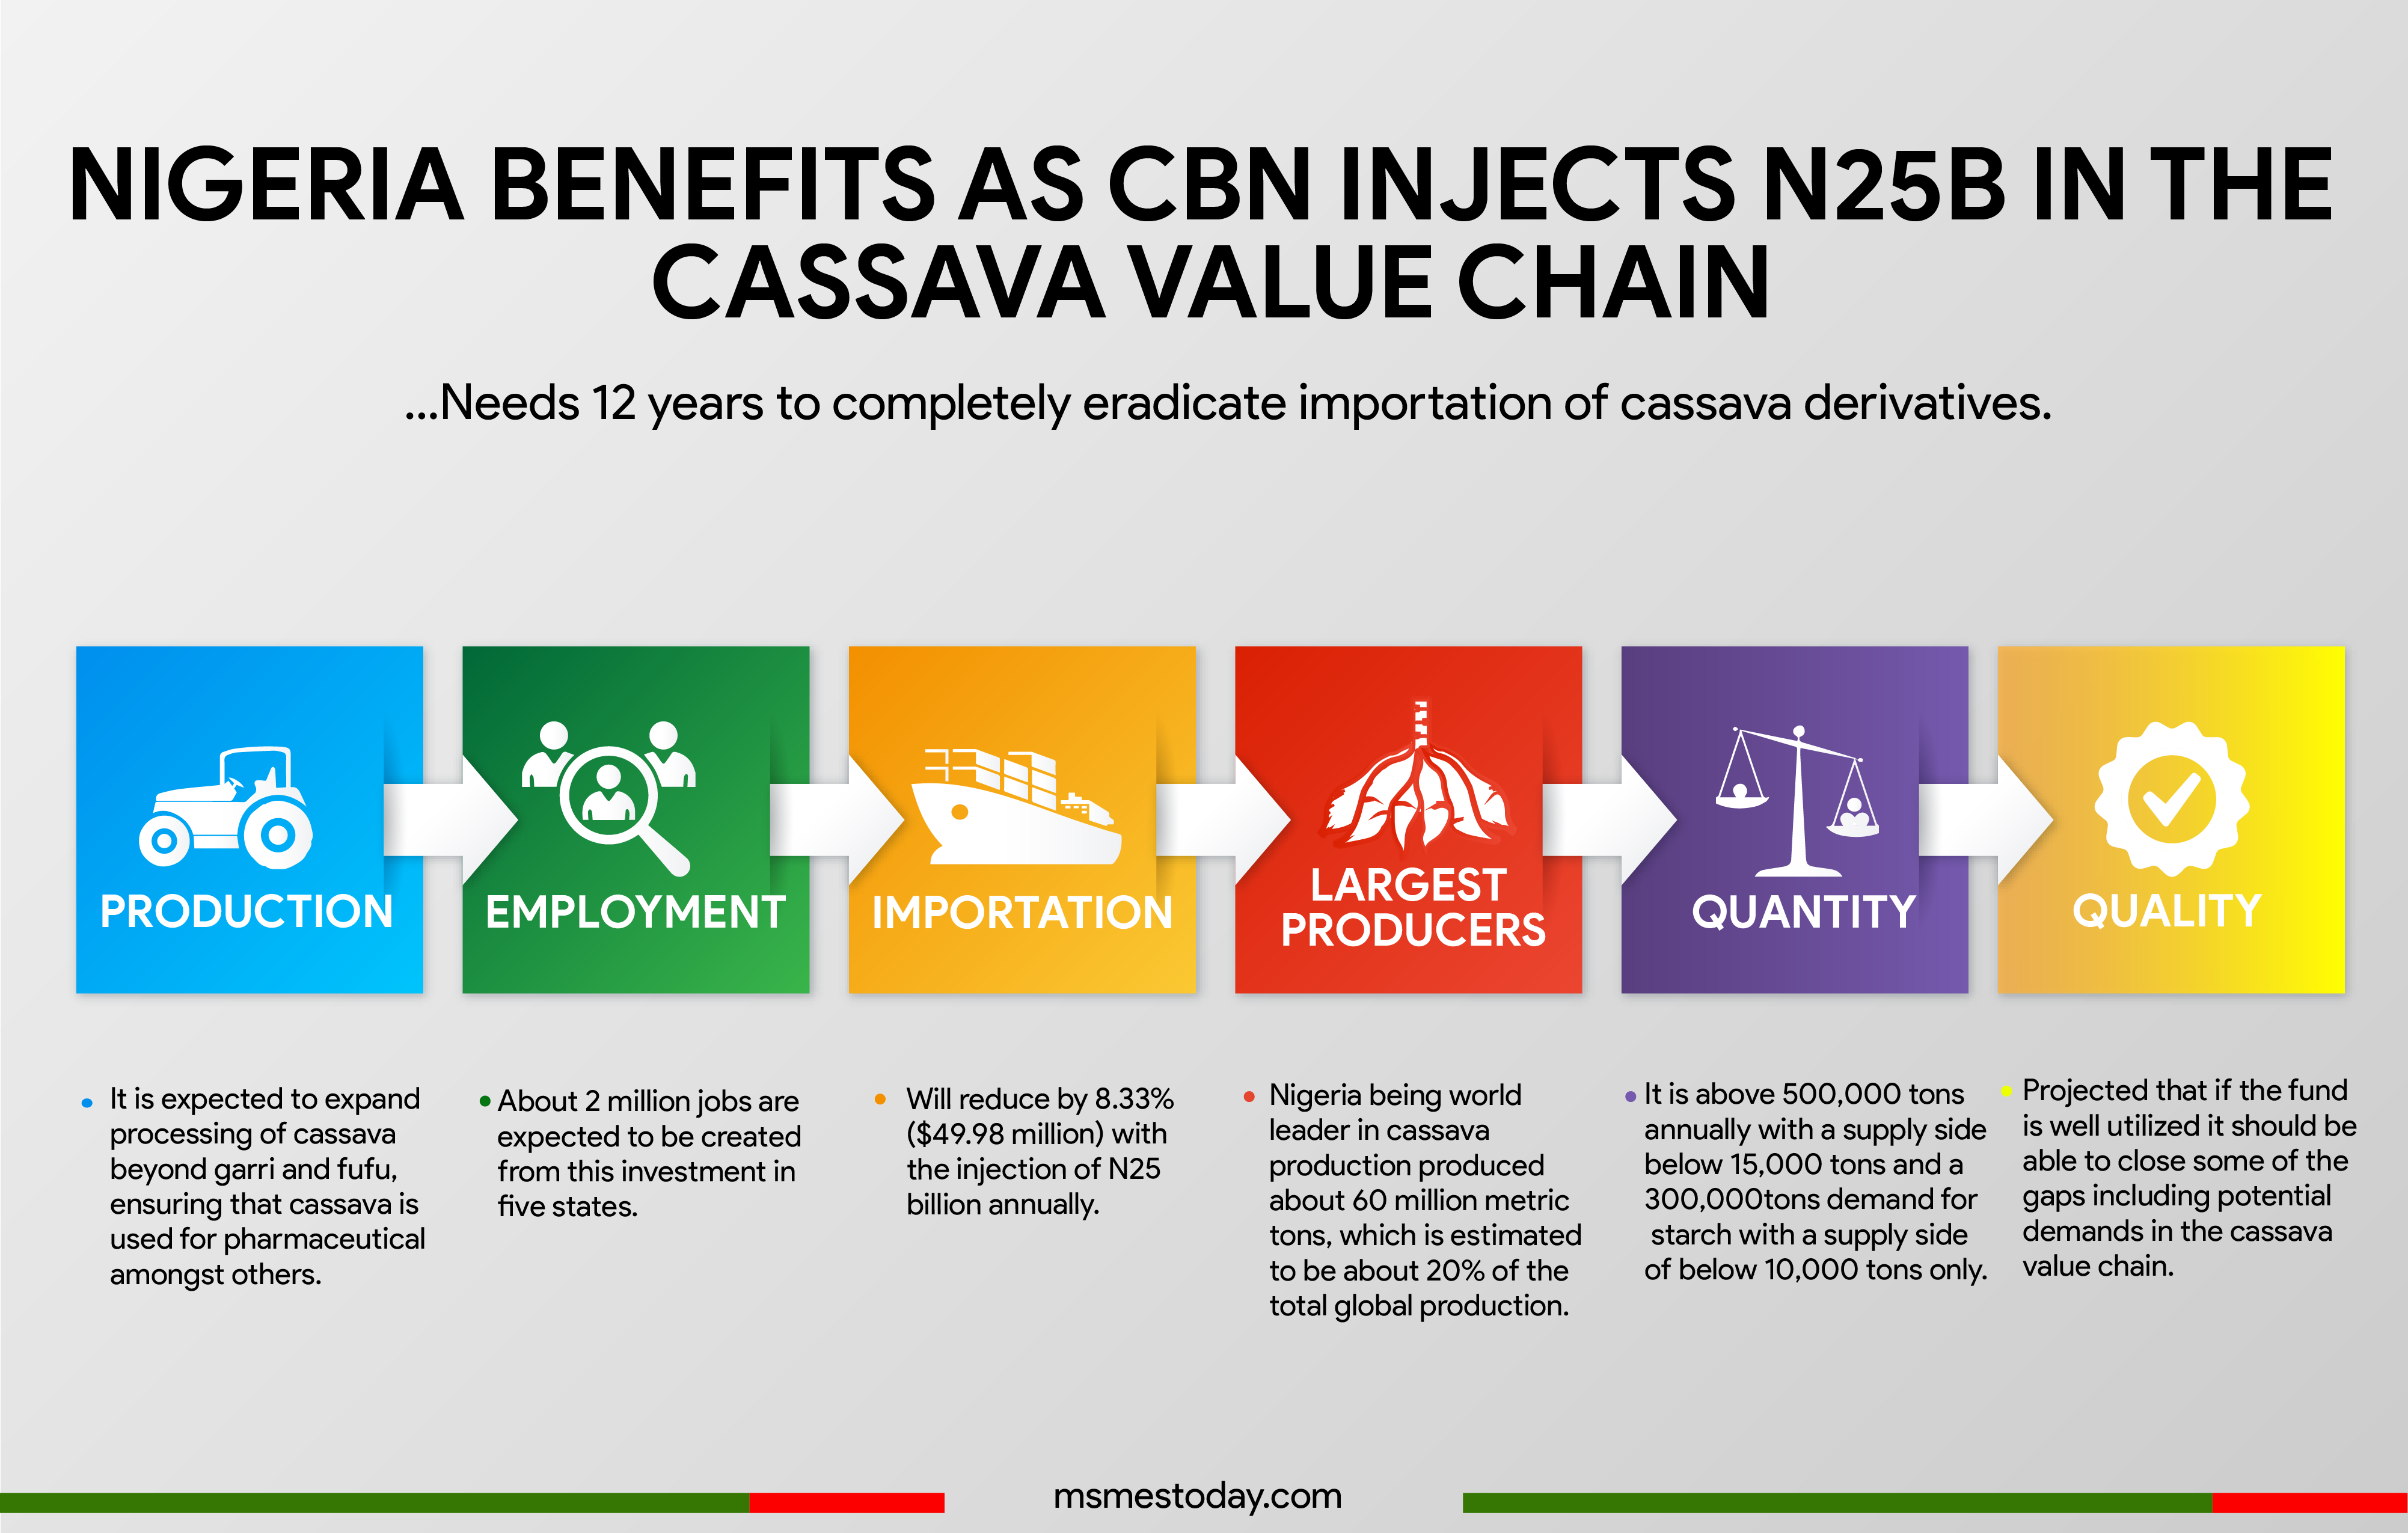 Nigeria to save $50 million annually as CBN injects ₦25b in the cassava value chain